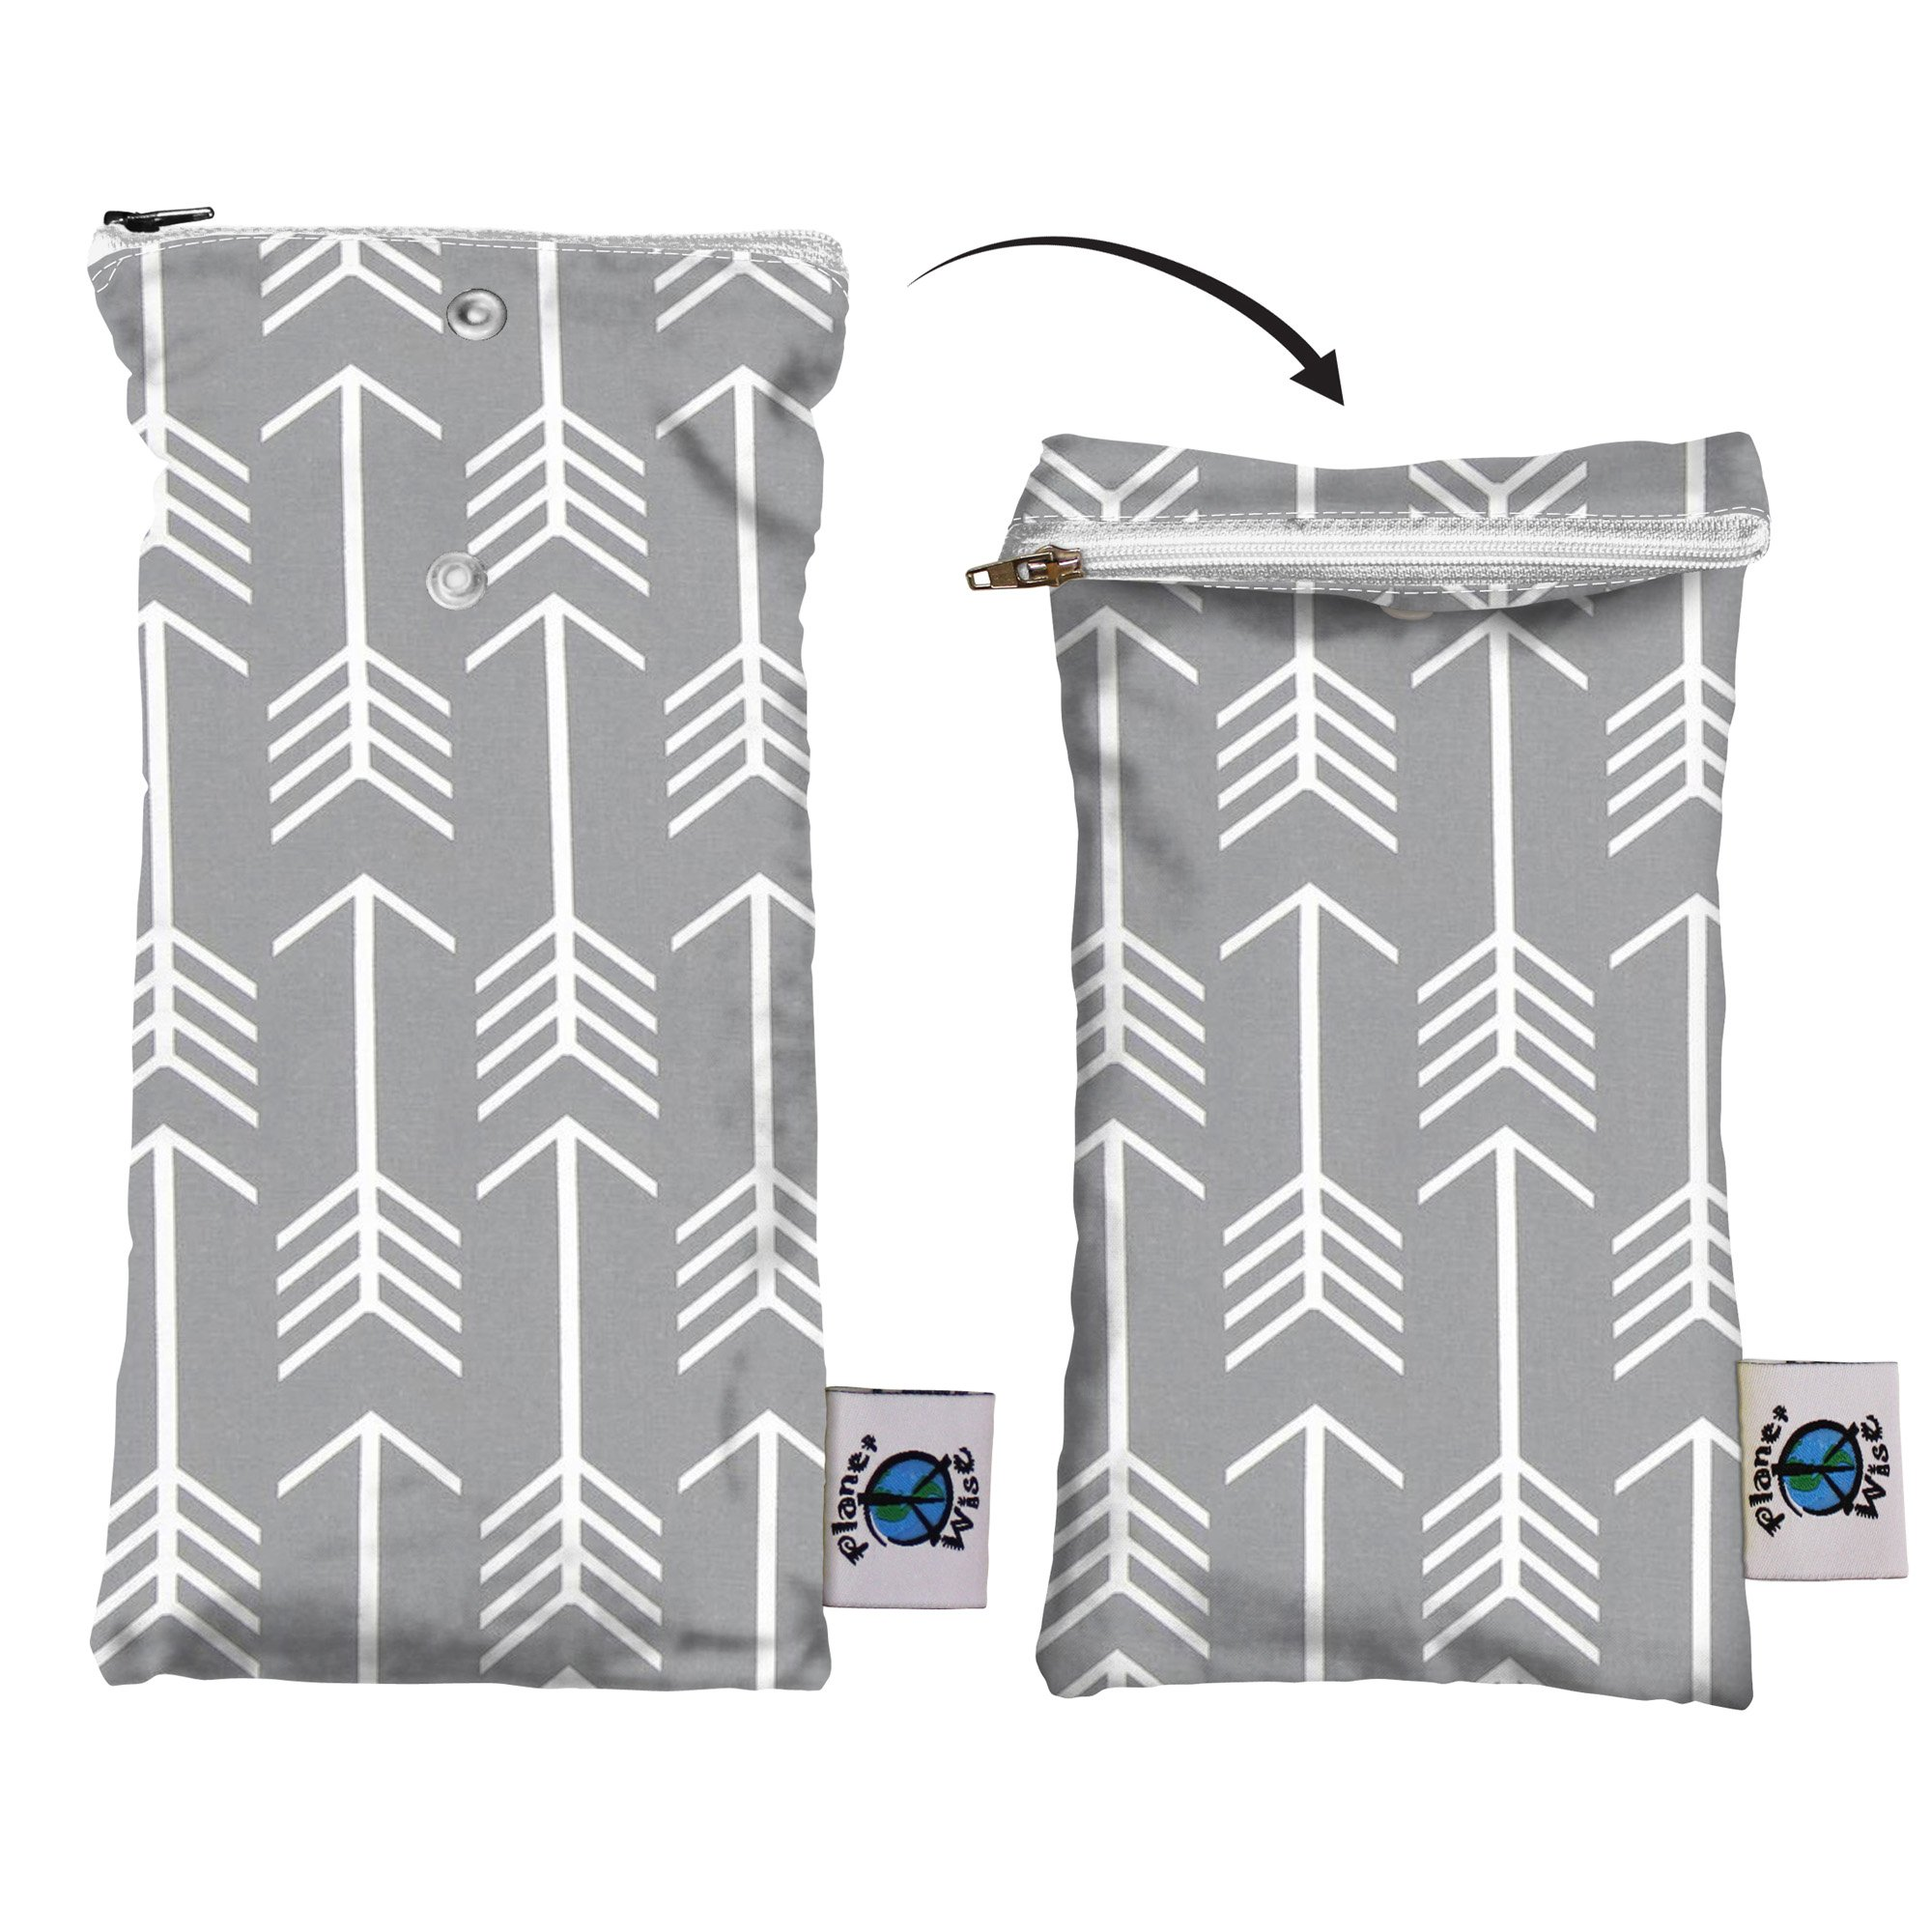 Planet Wise Wipe Pouch, Aim Twill, Made in the USA by Planet Wise